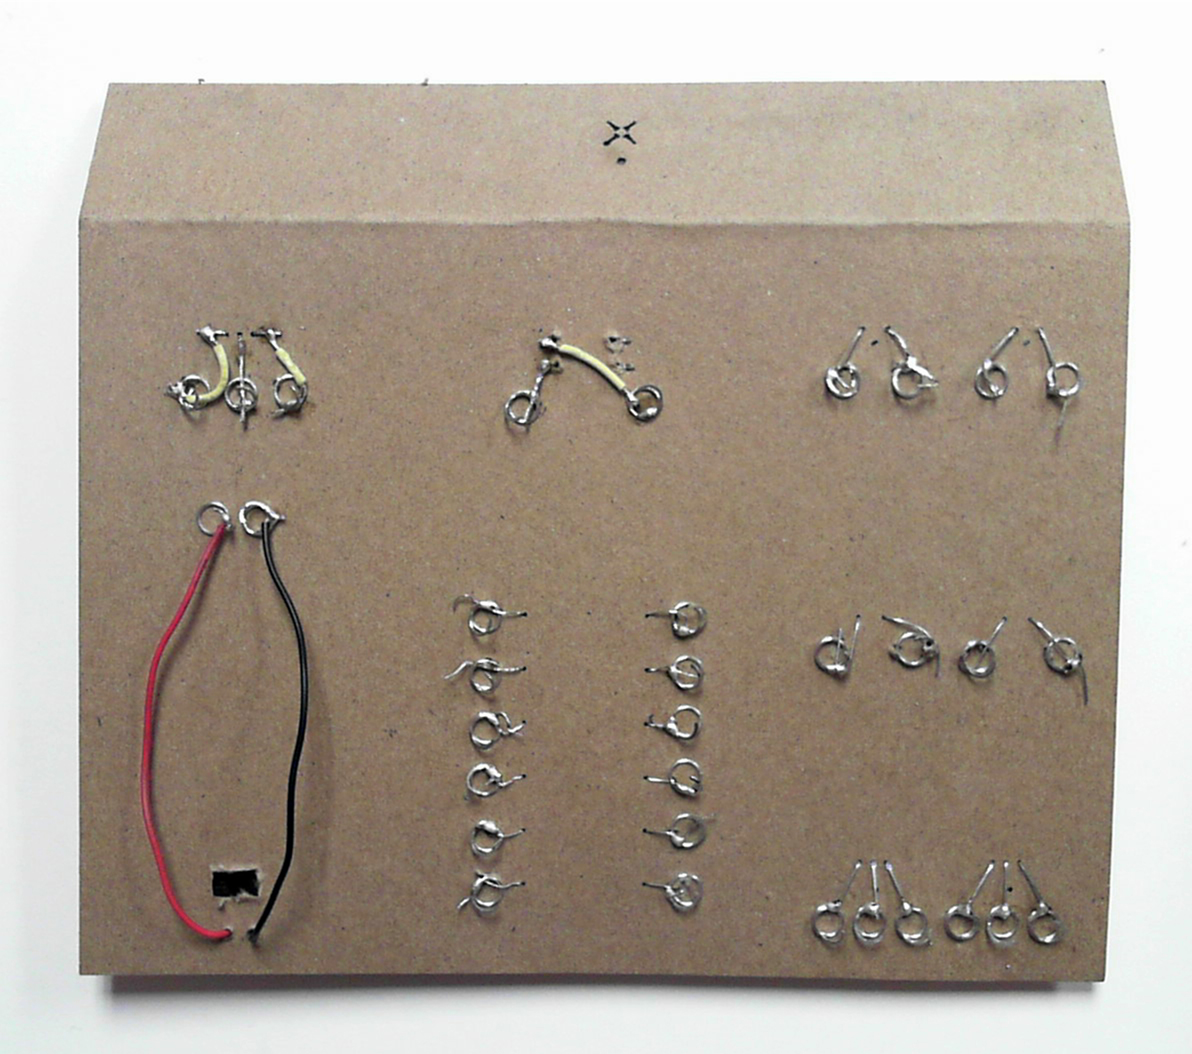 Recreating Classic Electronics Kits Making A Stripboard Circuit Building And Soldering Led Flasher Alt Text